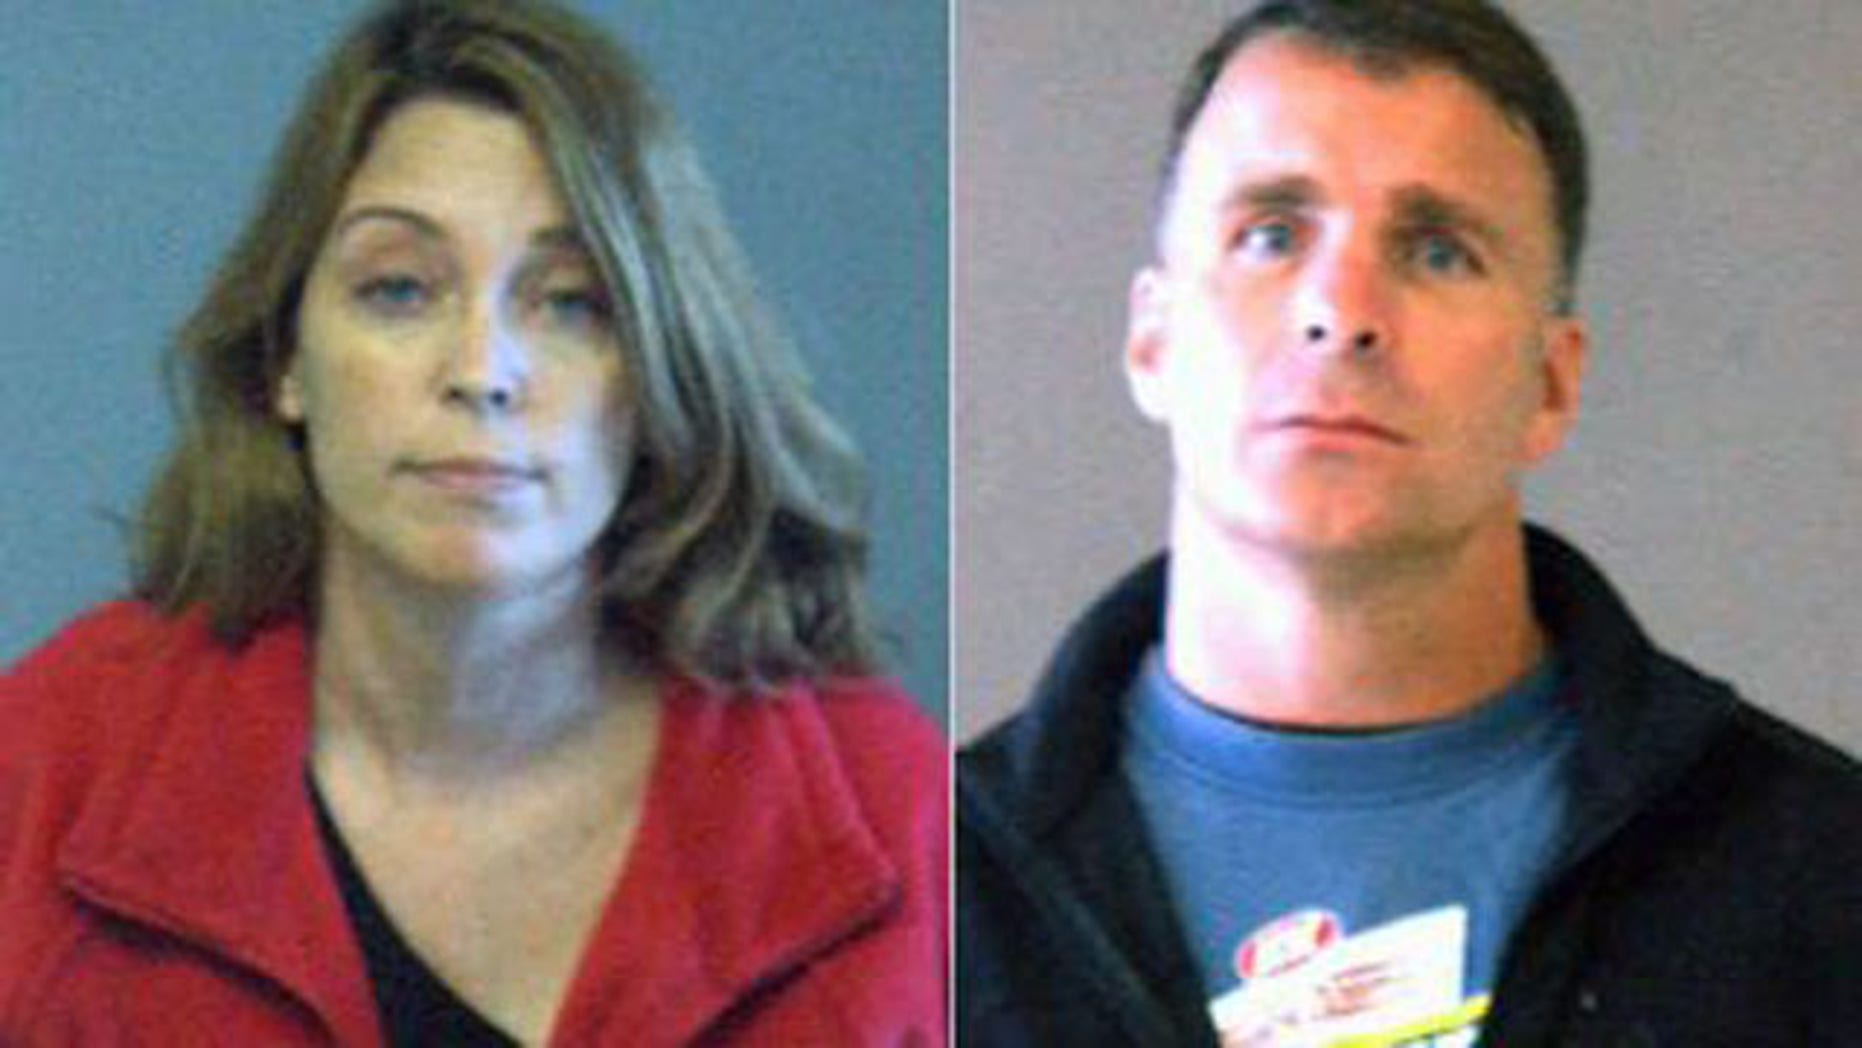 CDC official Kimberly Lindsey and her boyfriend, Thomas Westerman, are accused of child molestation.